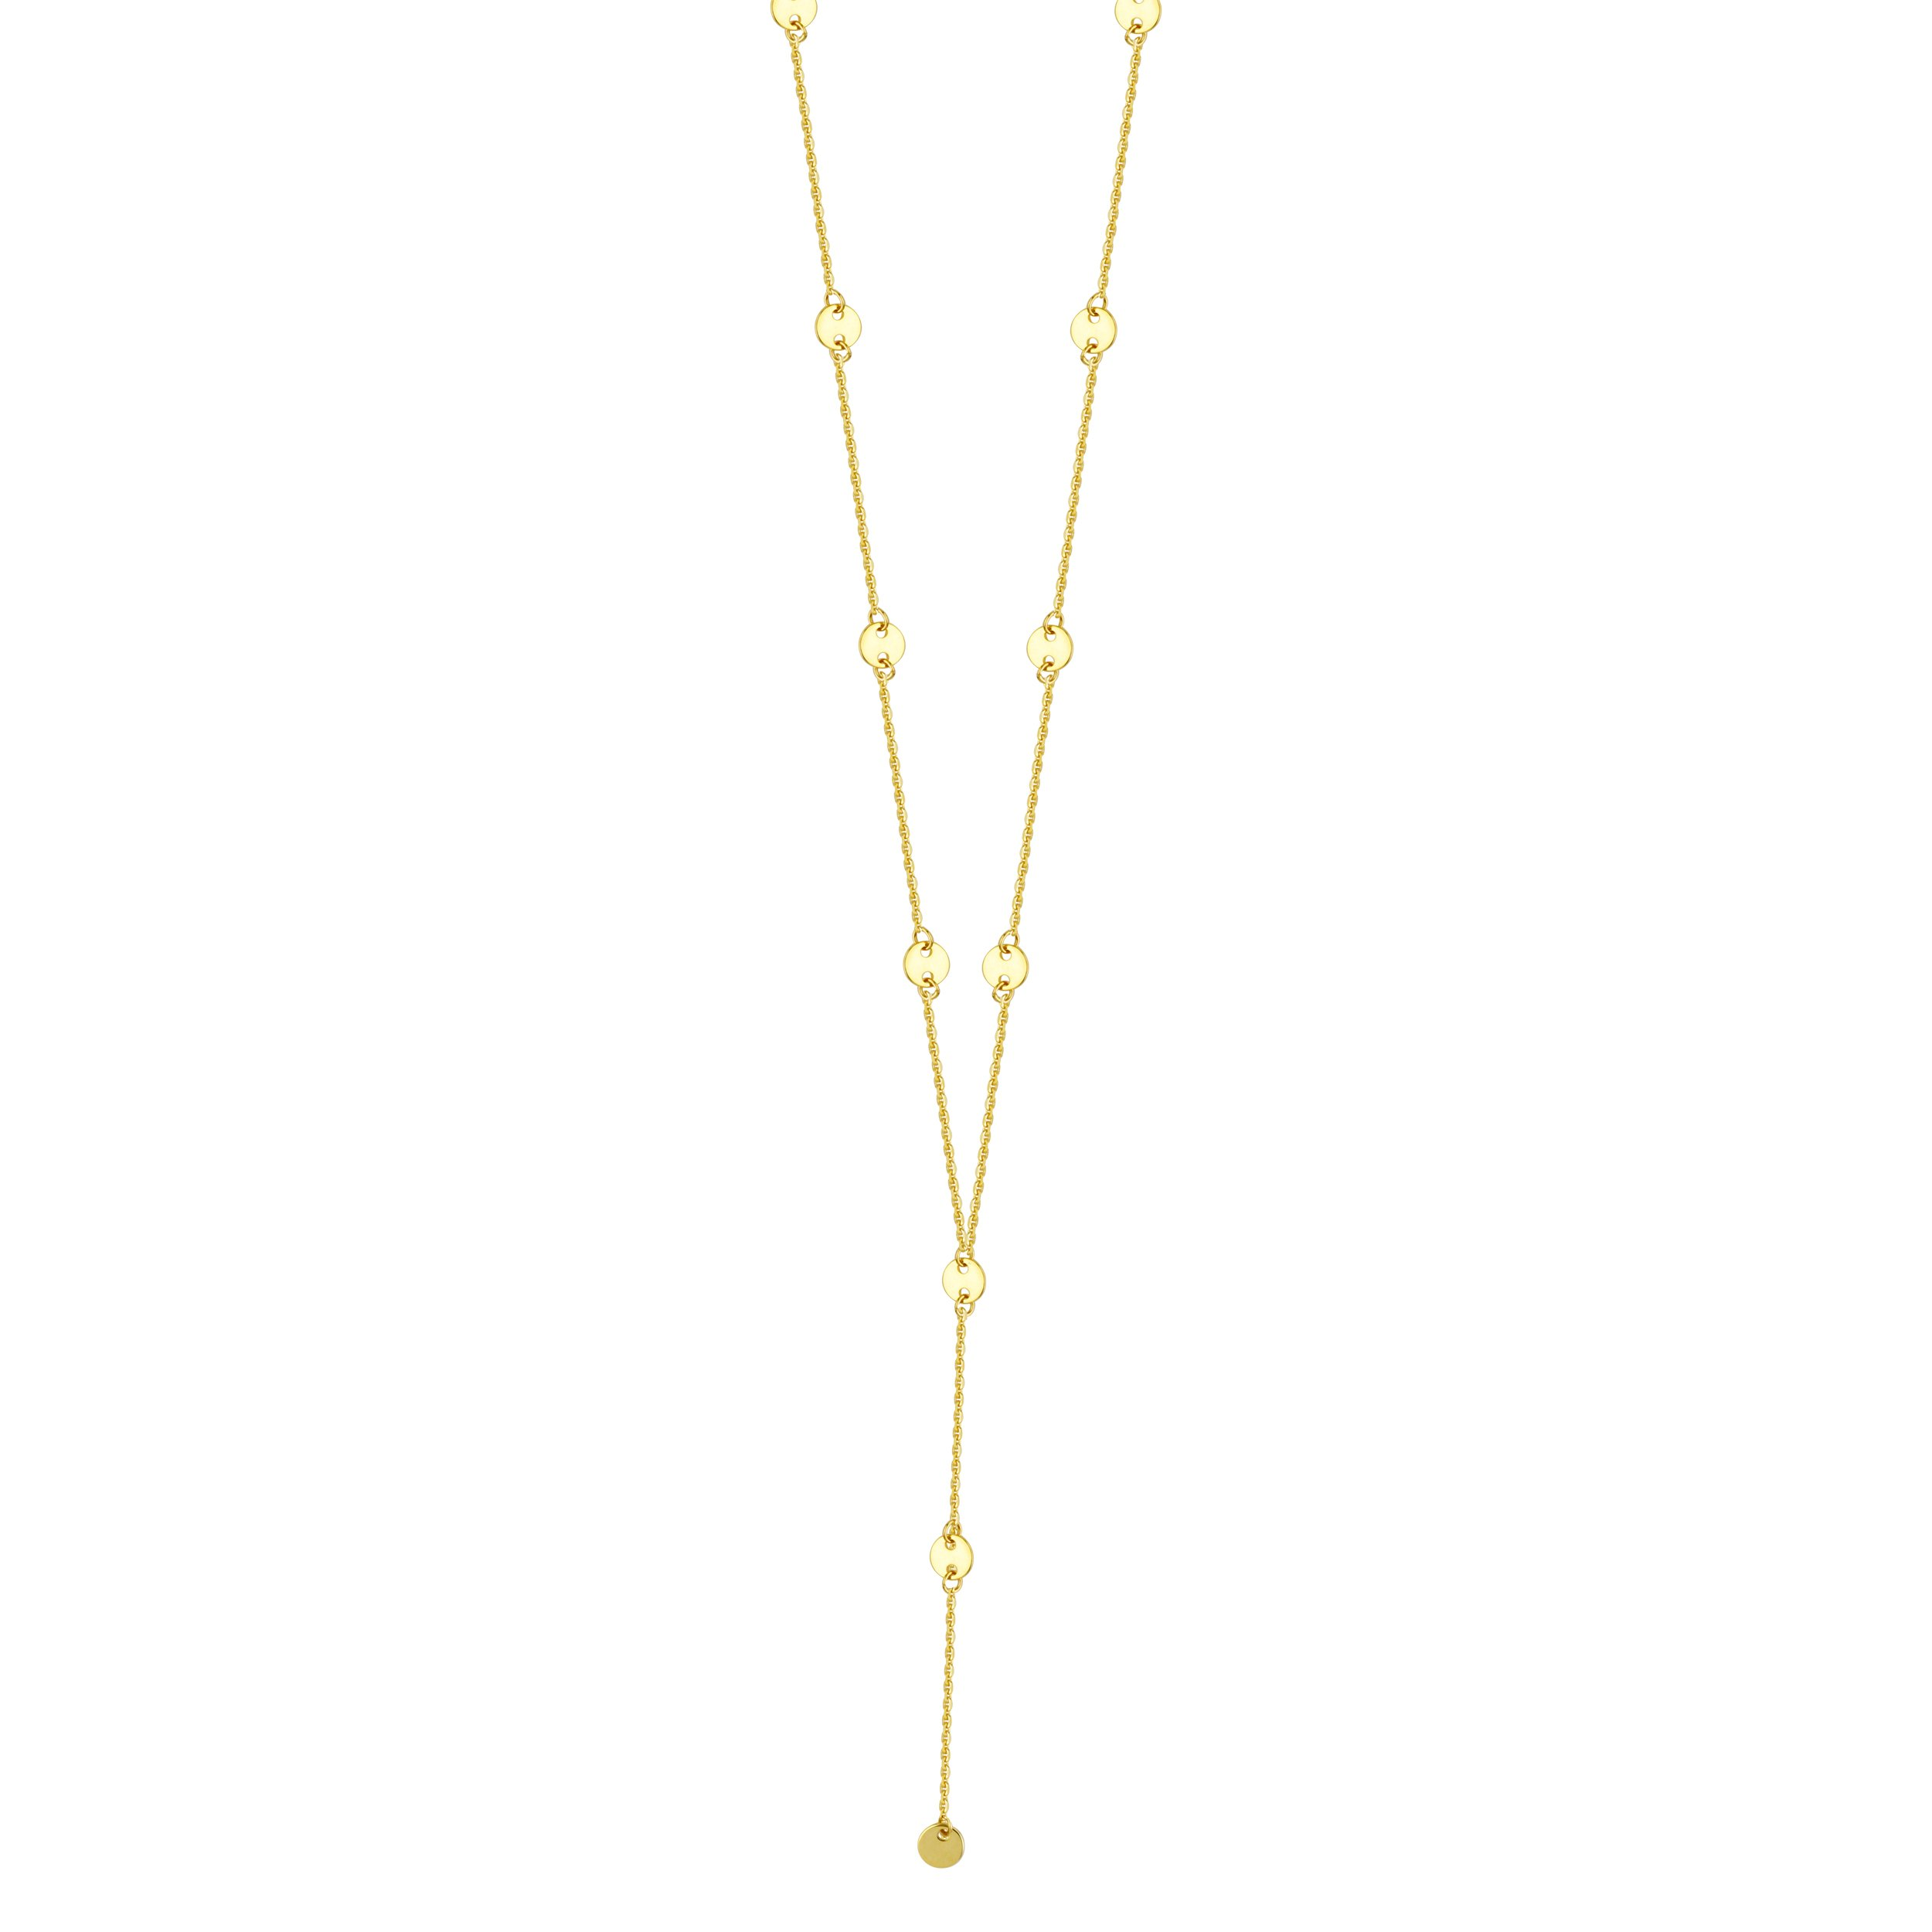 14k Yellow Gold Y-style Lariat Necklace with 4mm Disk Stations Adjustable Length by AzureBella Jewelry